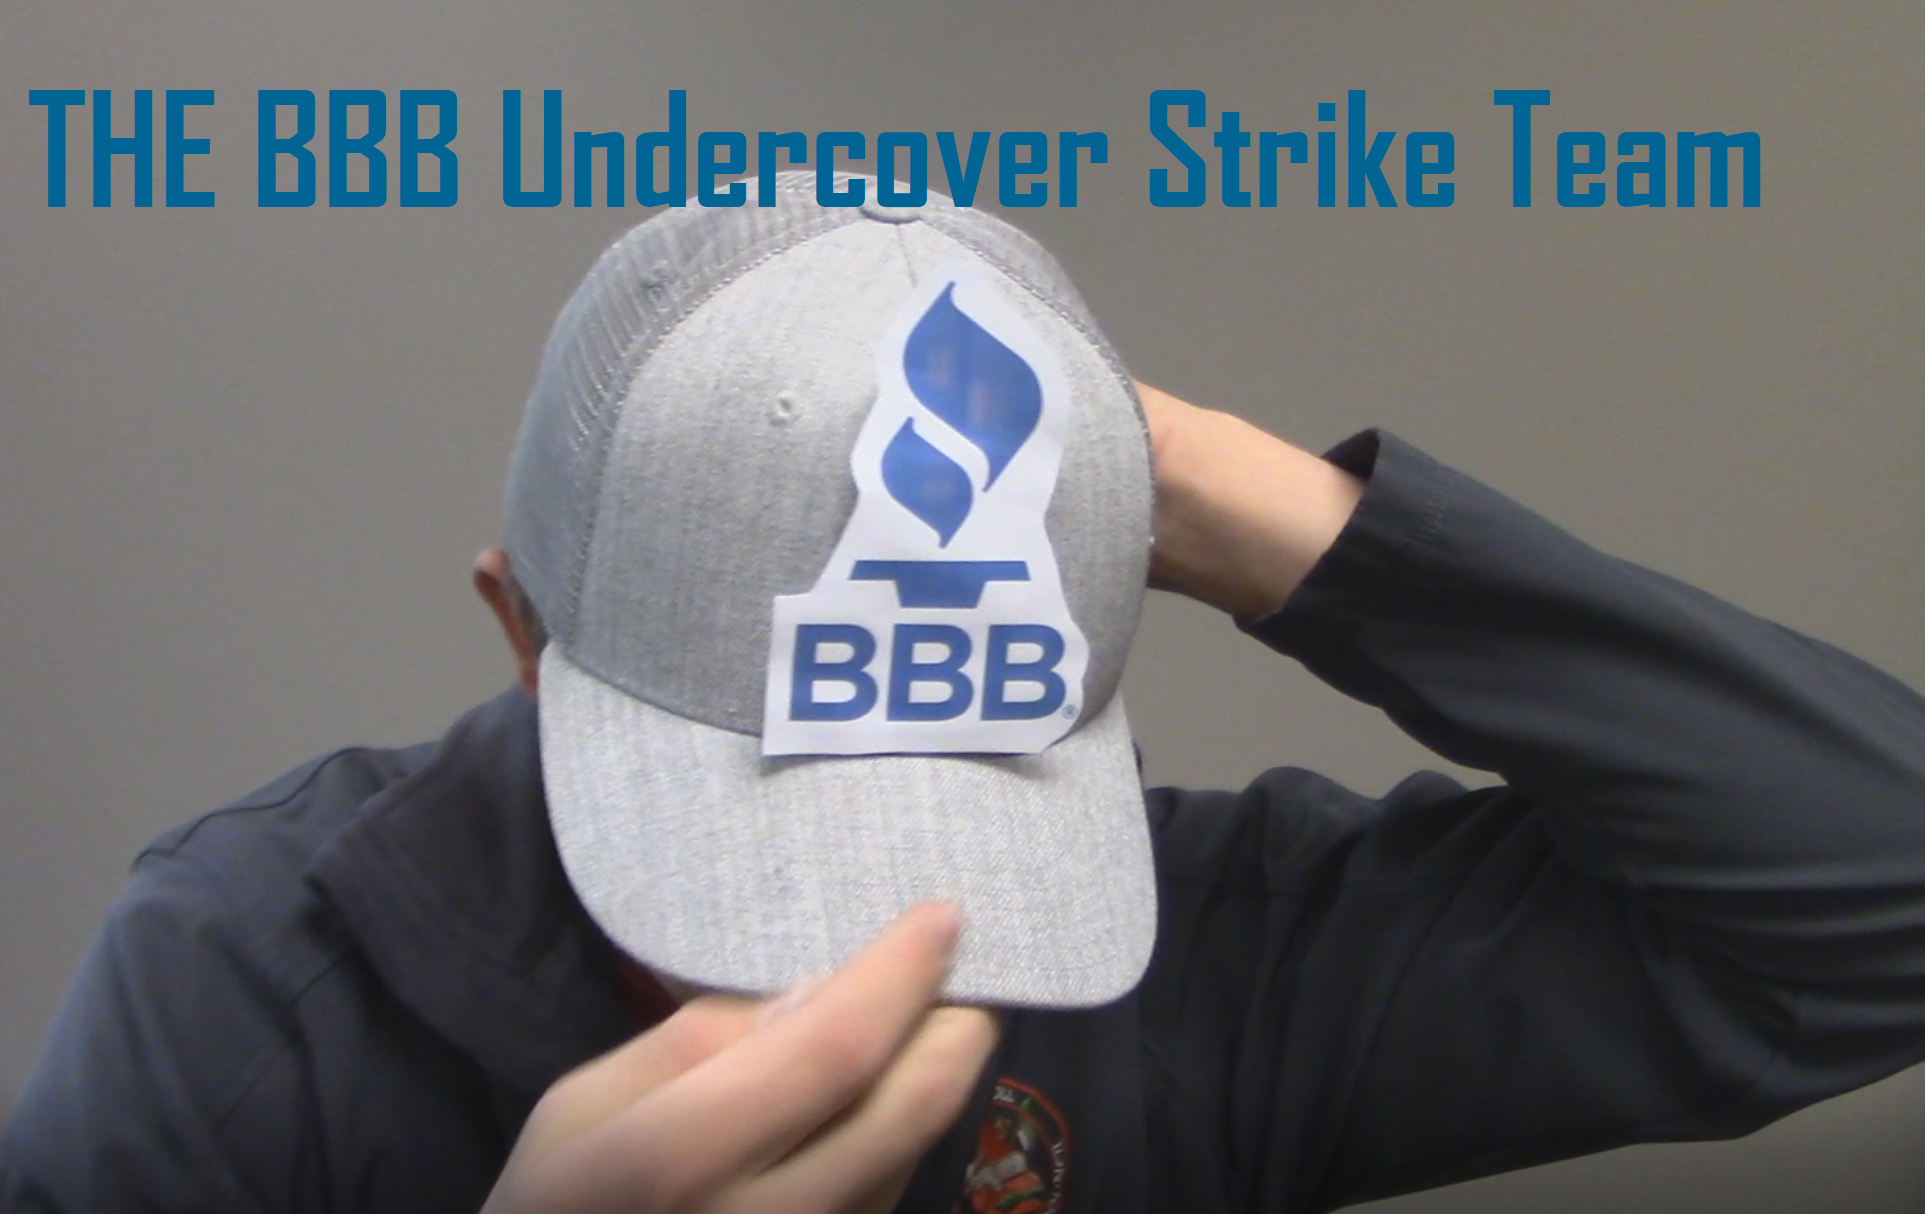 The BBB Undercover Strike Team